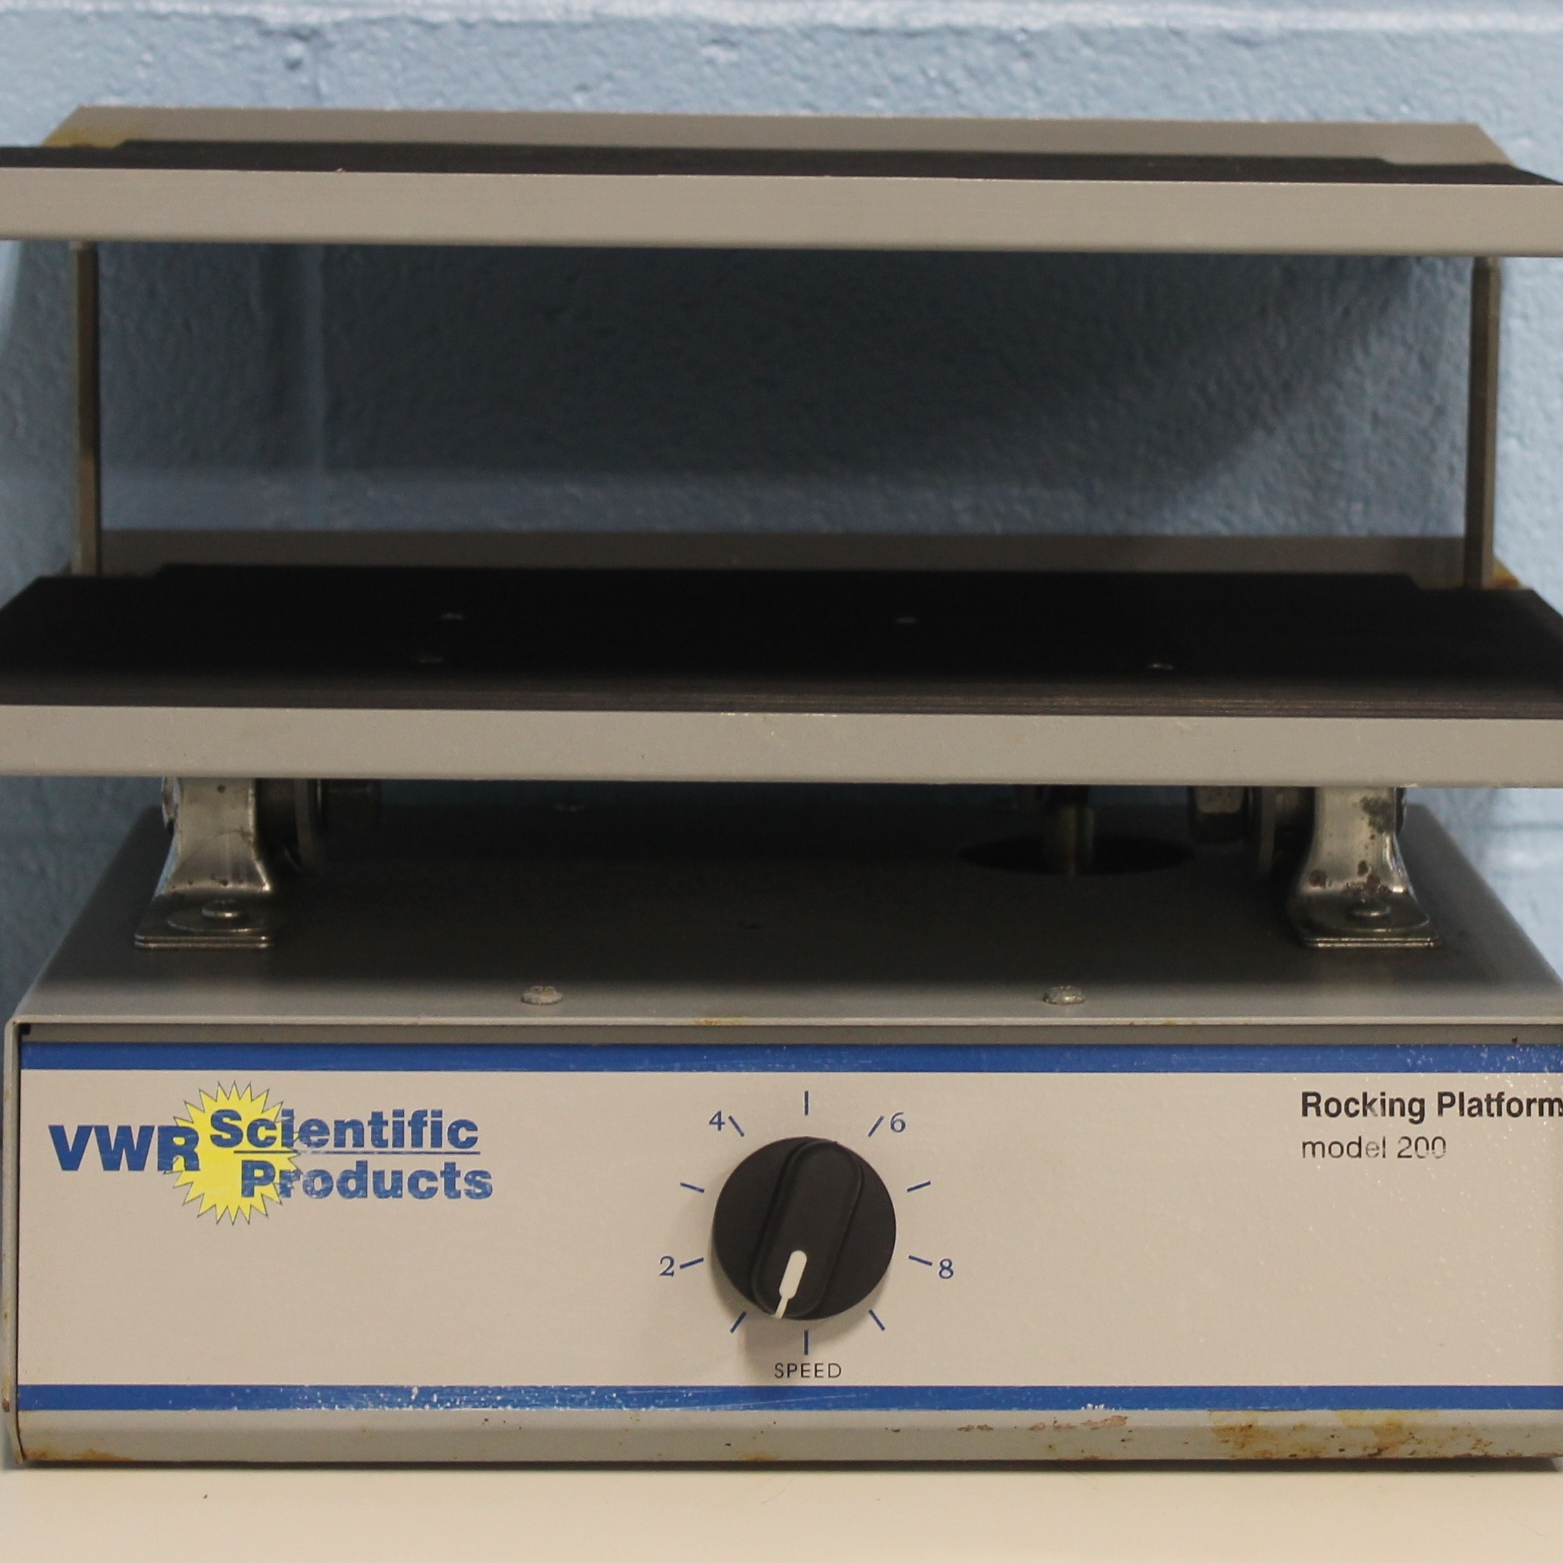 VWR Scientific Model 200 Rocking Platform Shaker Image